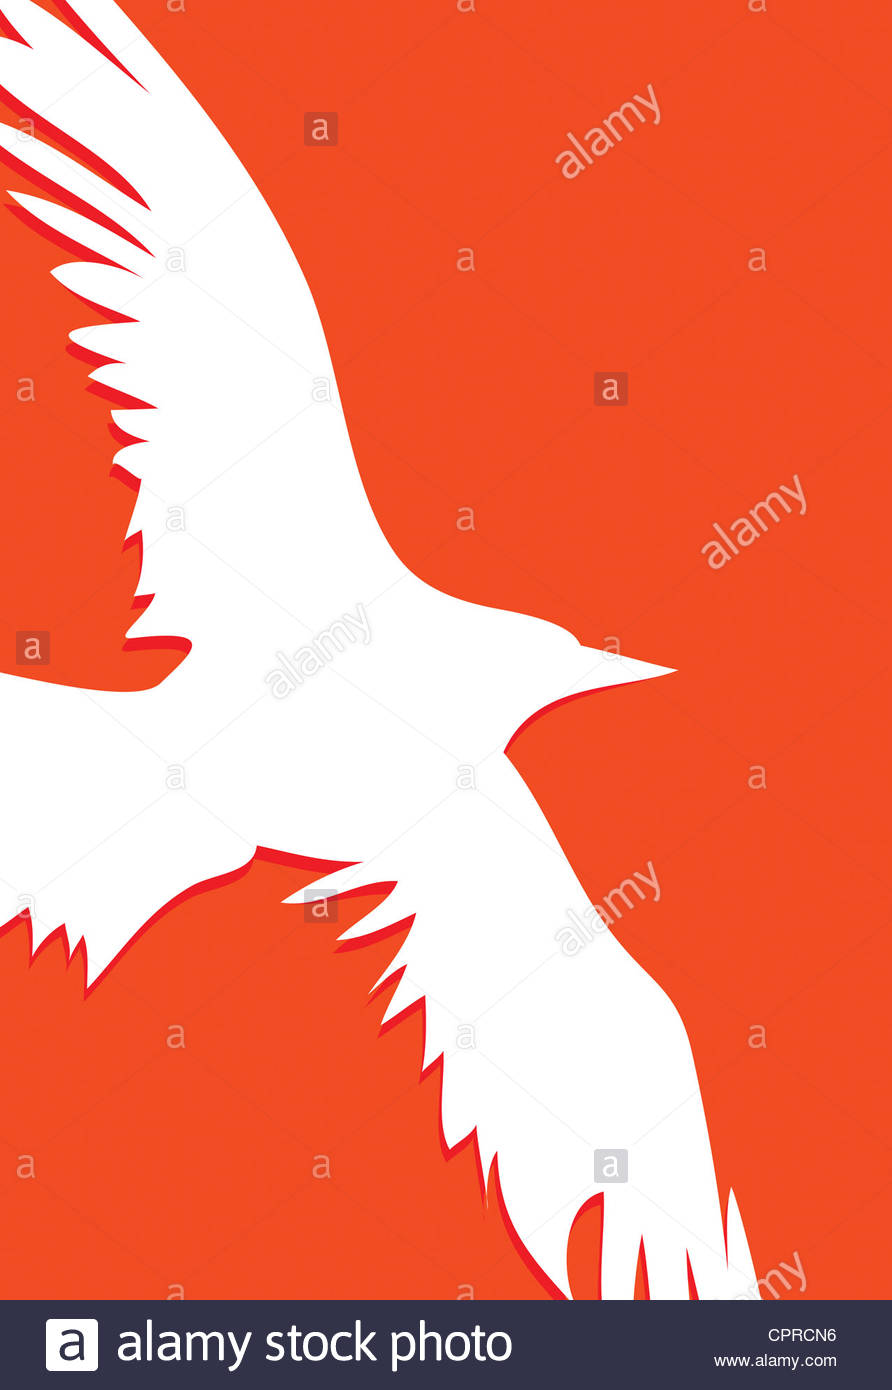 892x1390 White Silhouette Of A Flying Bird Of Prey Stock Photo 48458066